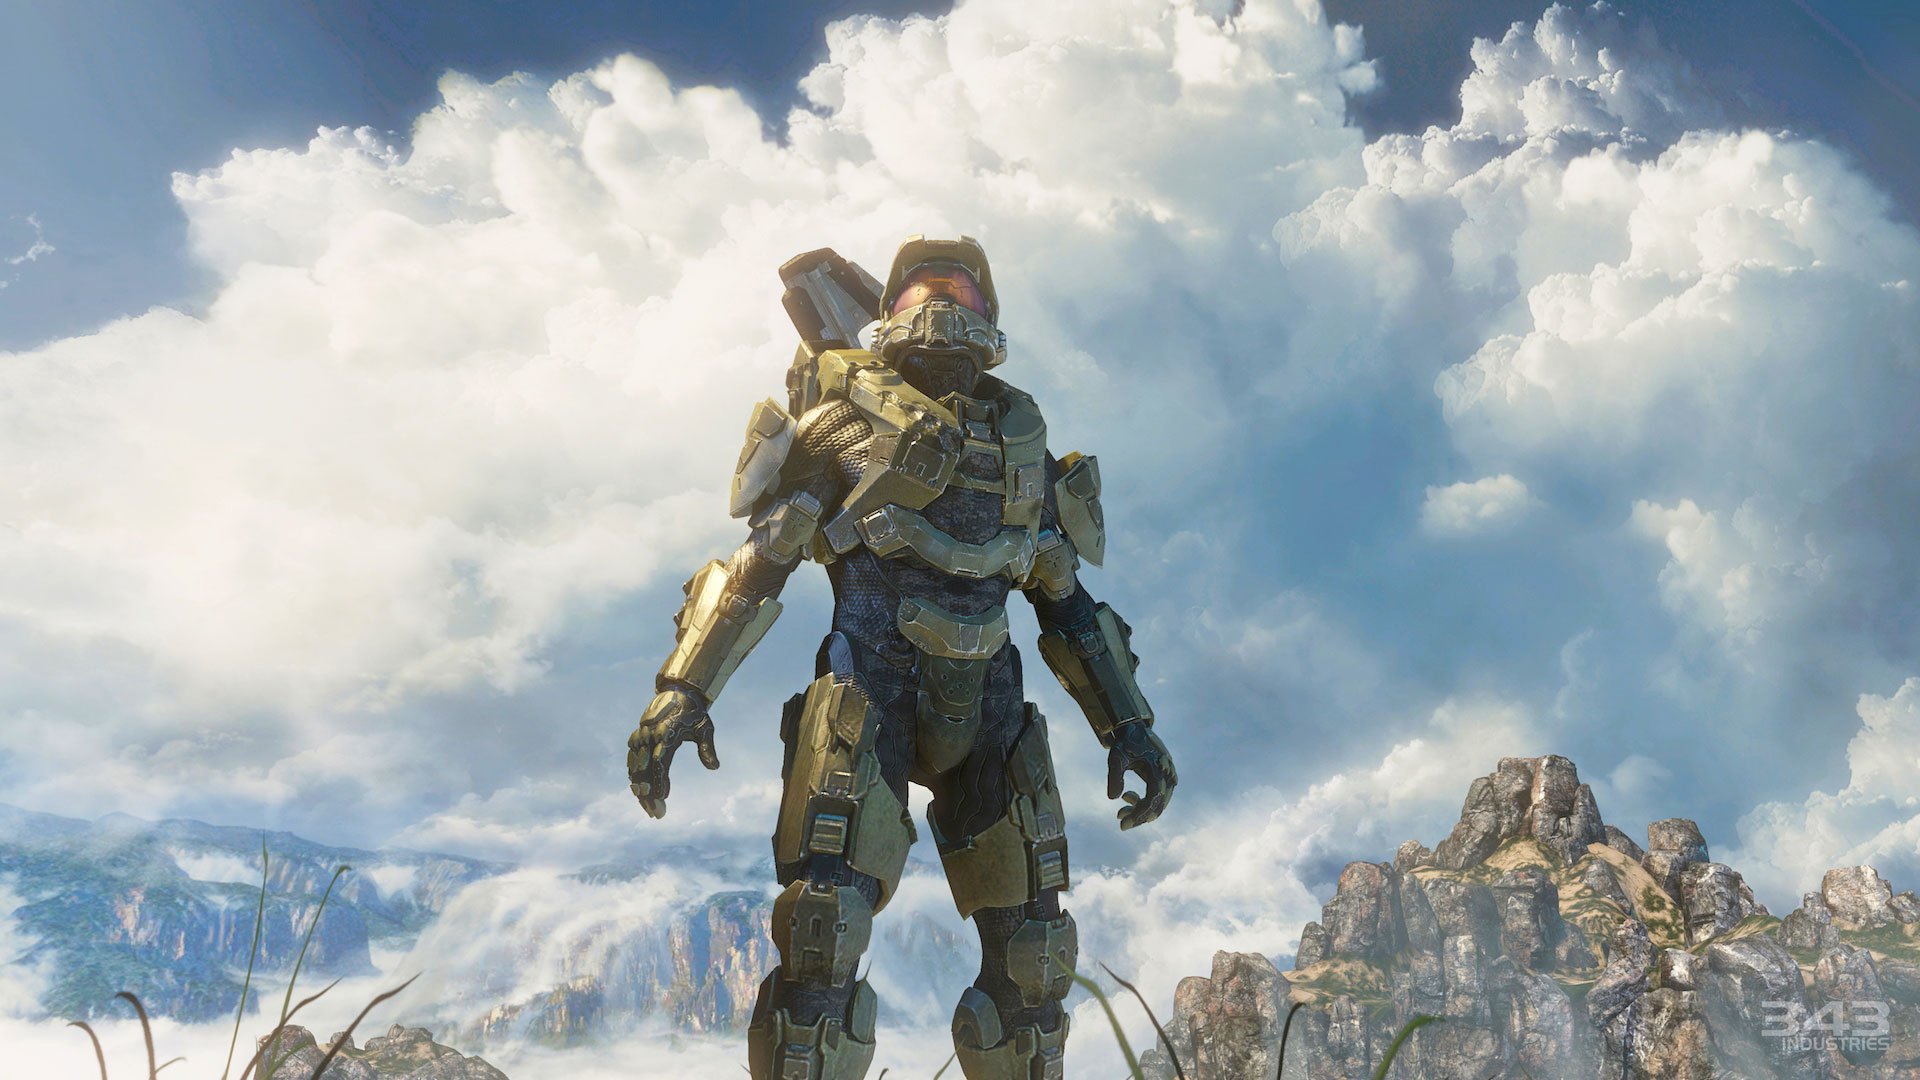 Halo will bring back local multiplayer